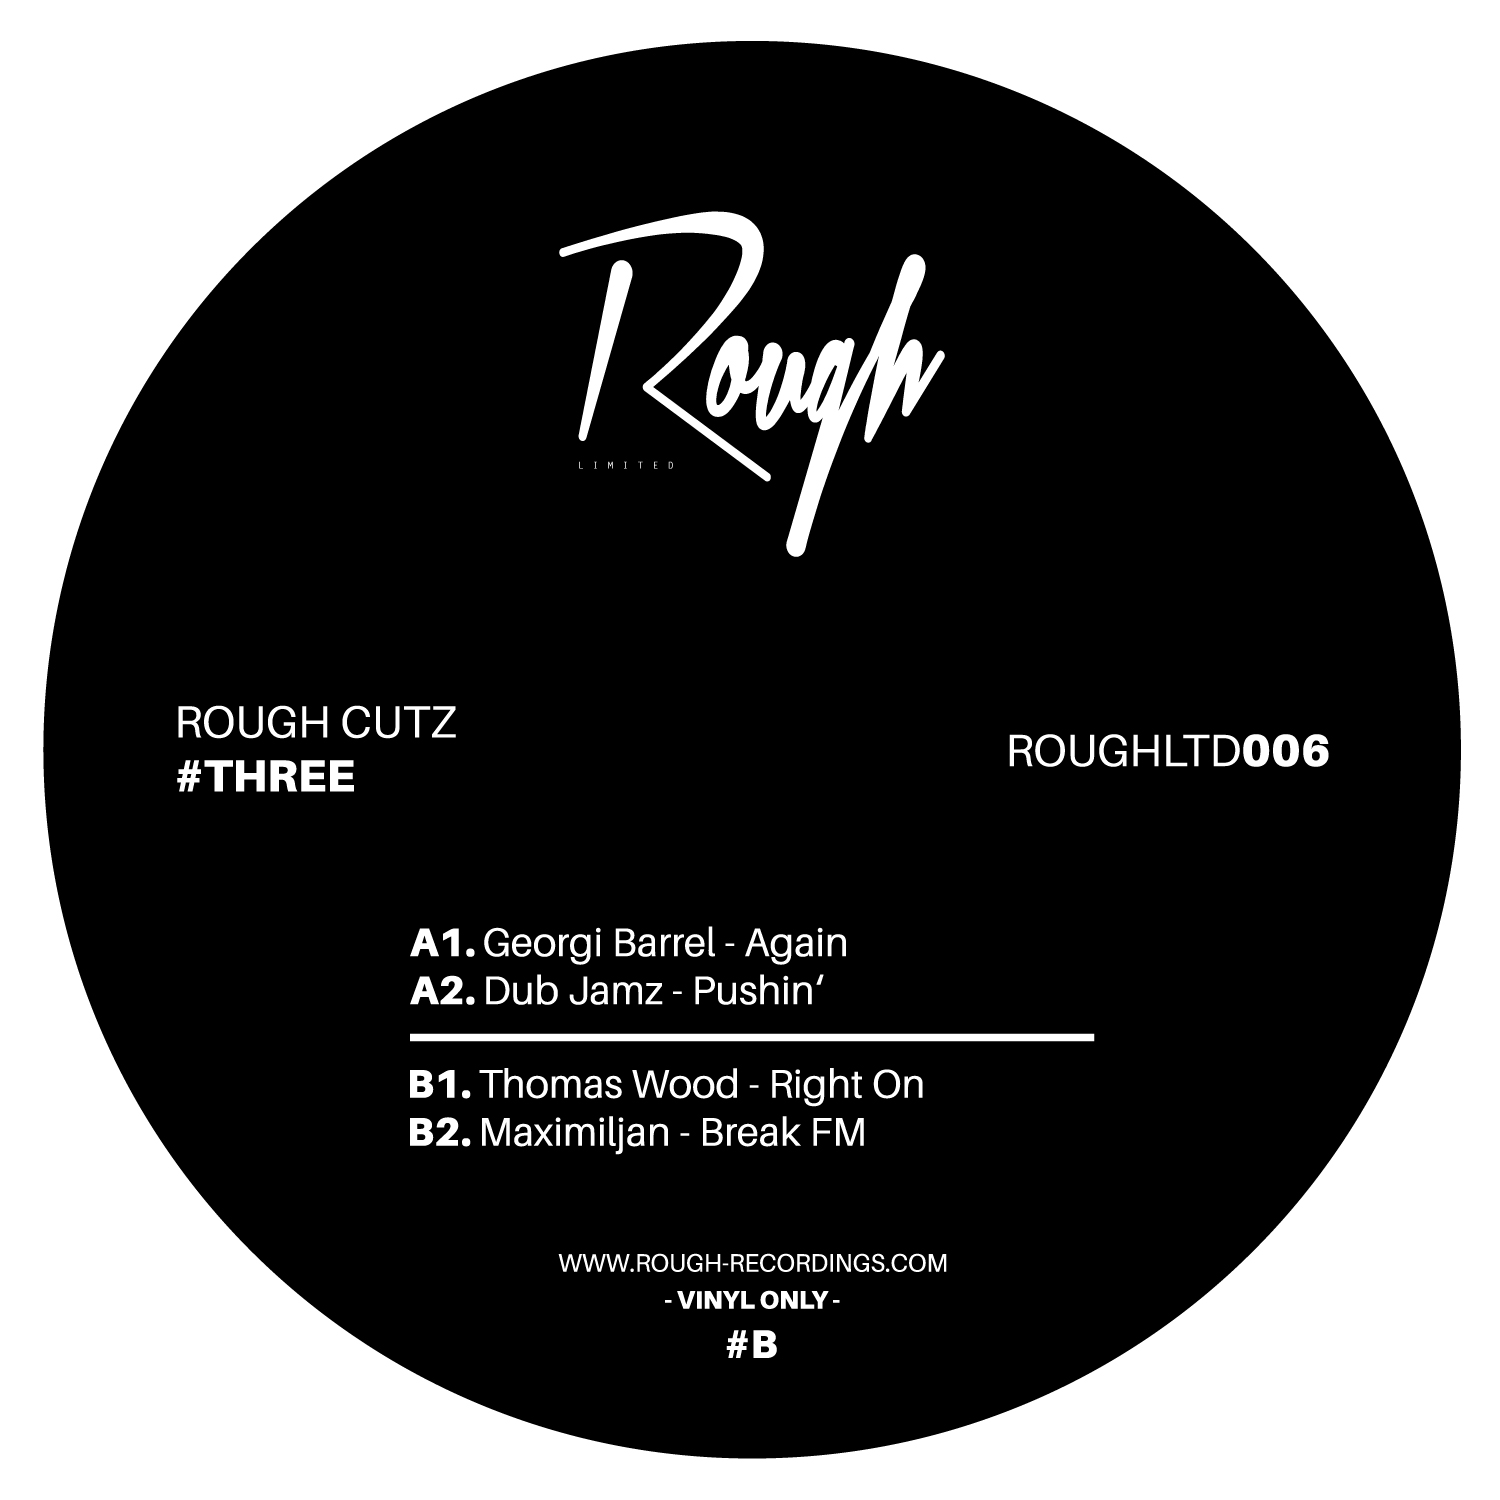 https://www.rough-recordings.com/wp-content/uploads/ROUGHLTD006_B.jpg